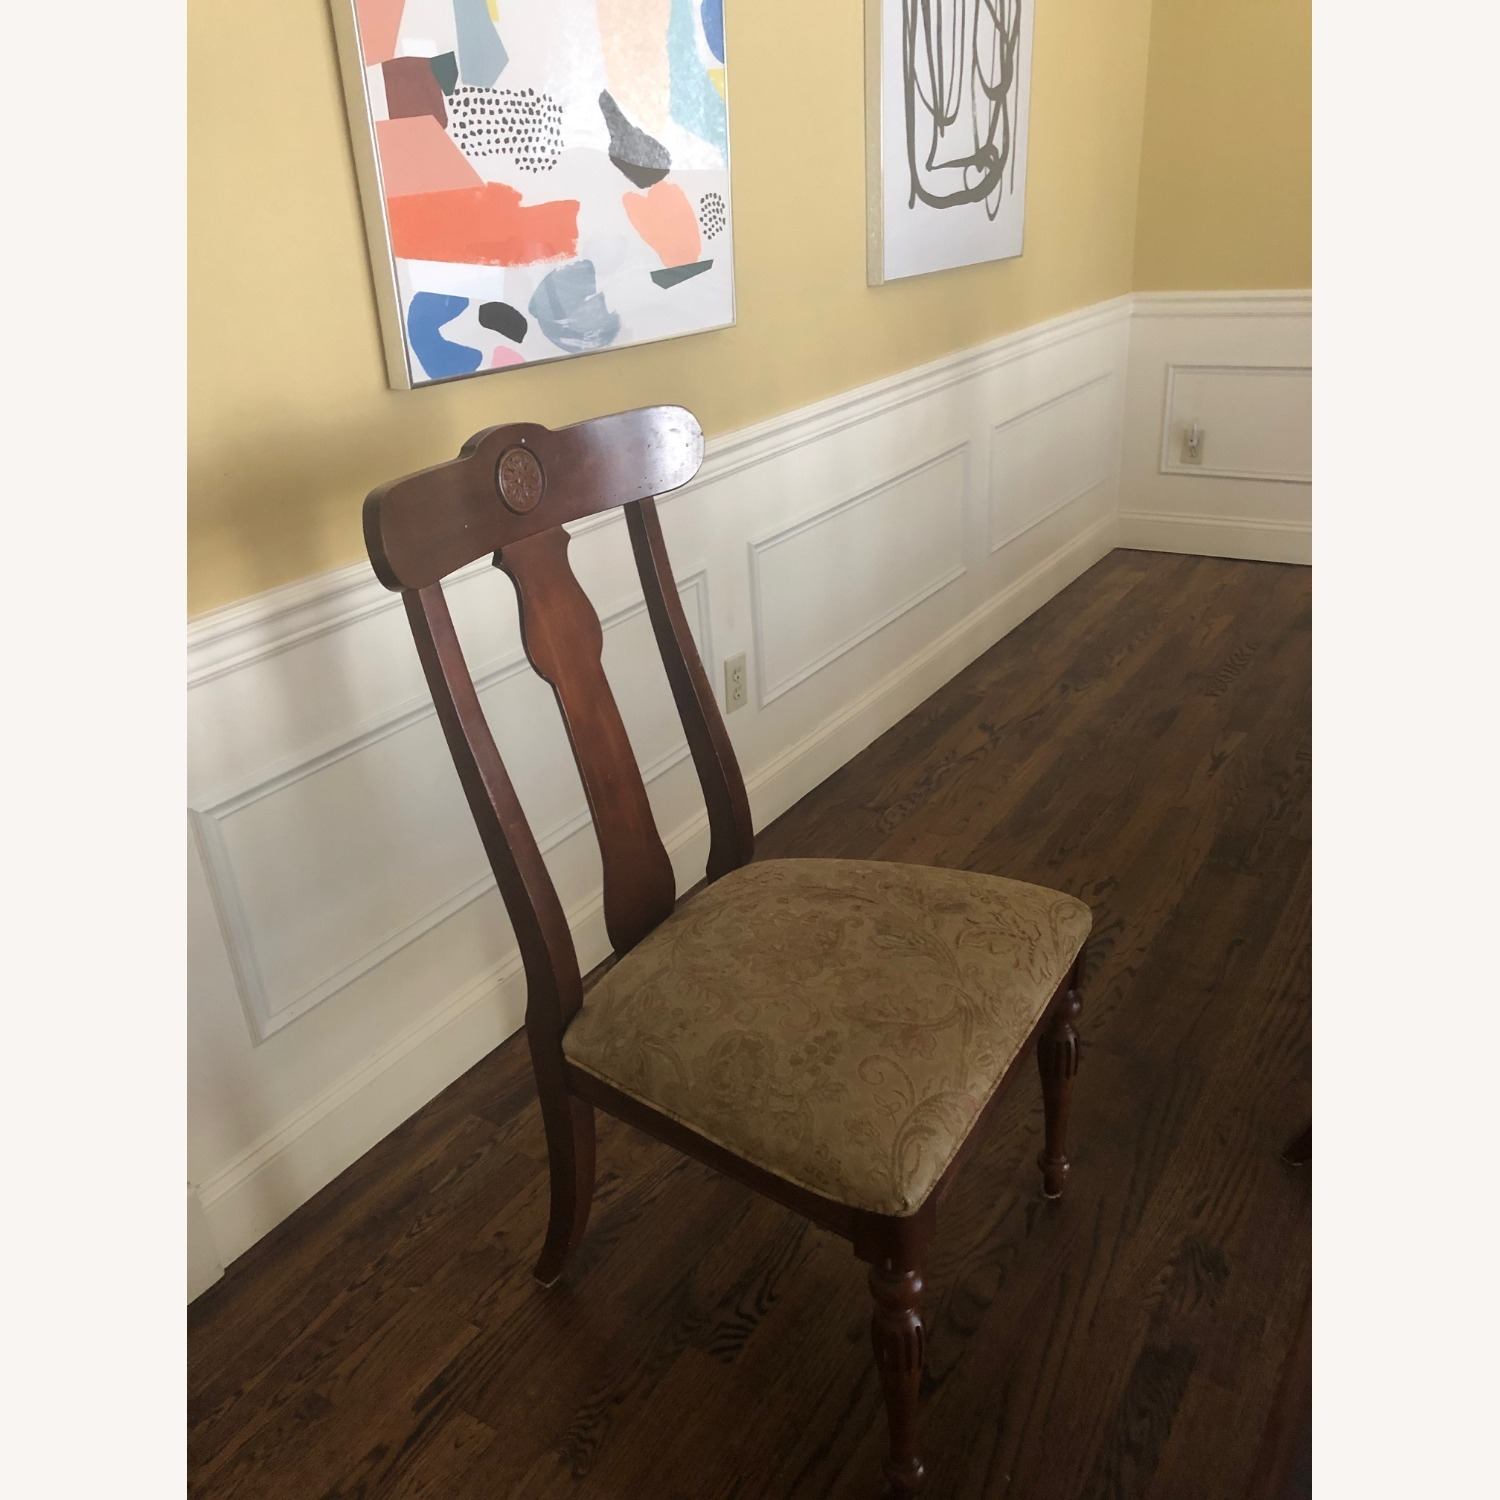 Ethan Allen Dining Room Chairs - image-3